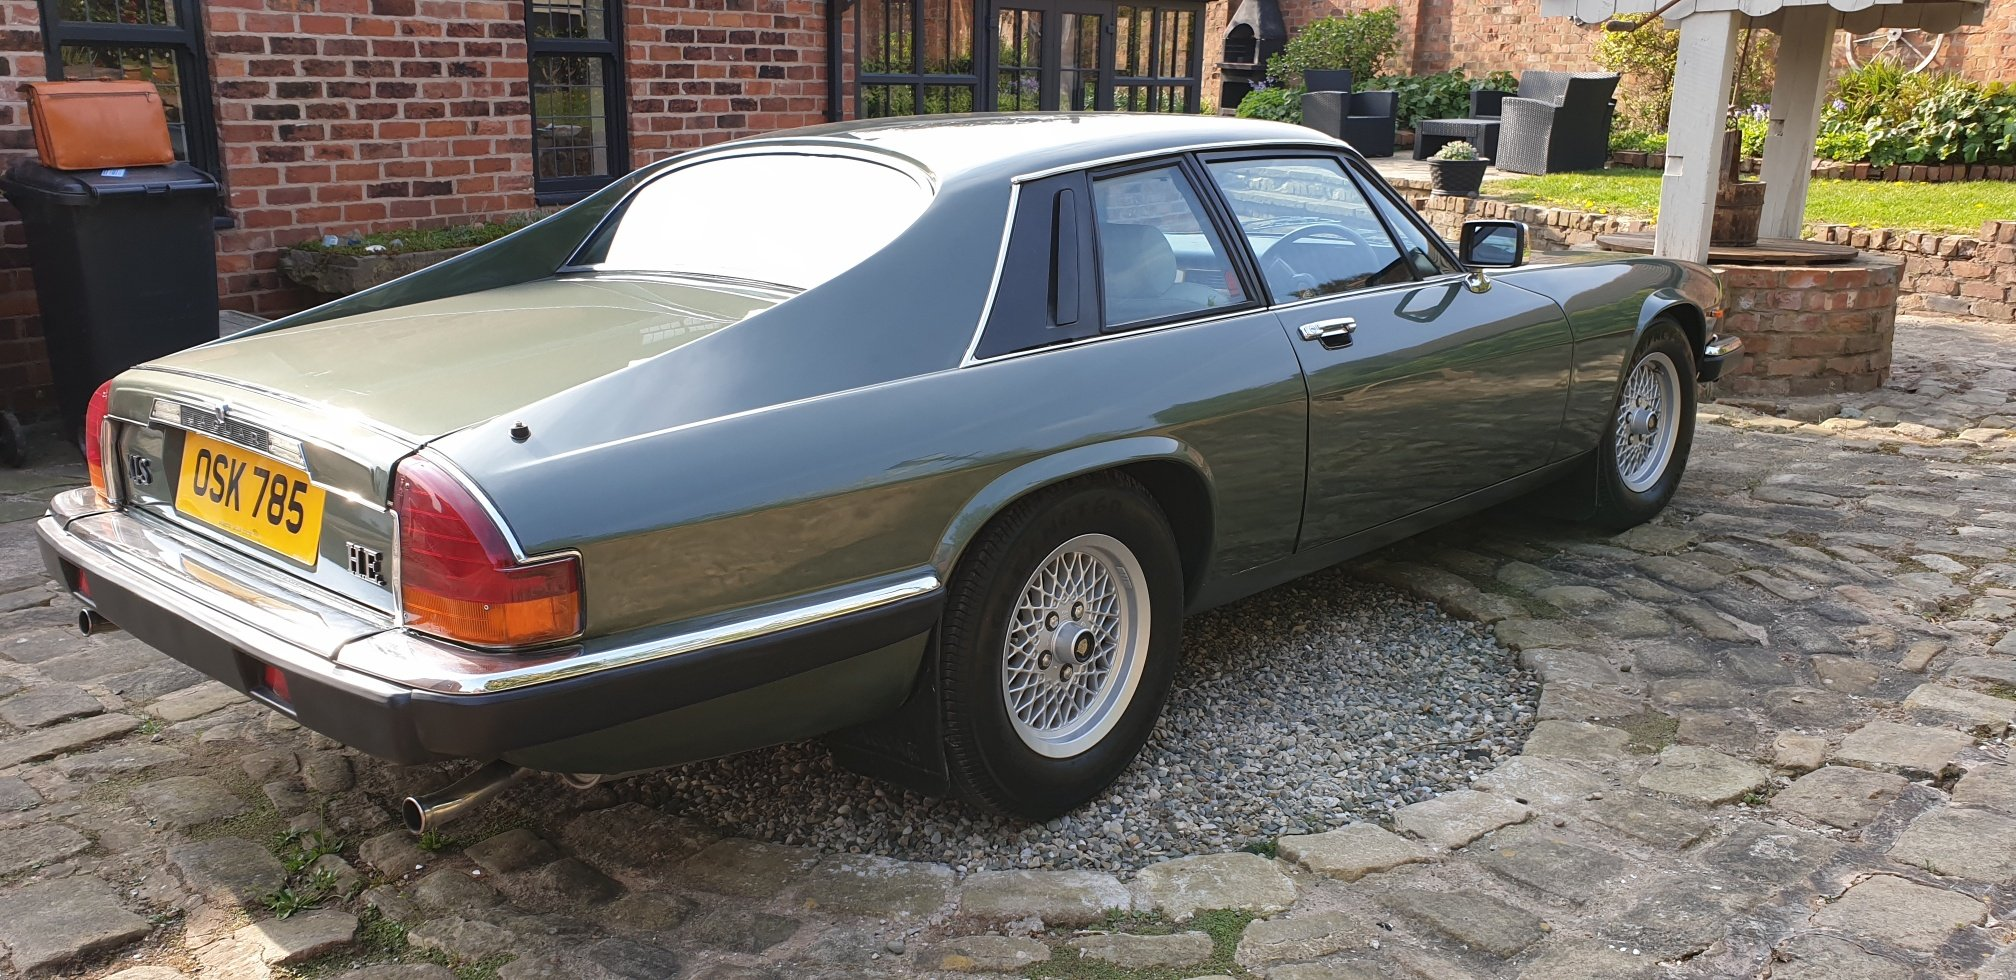 1985 Jaguar XJS V12 HE 39,000 Miles 2 Prev Owners For Sale (picture 3 of 6)